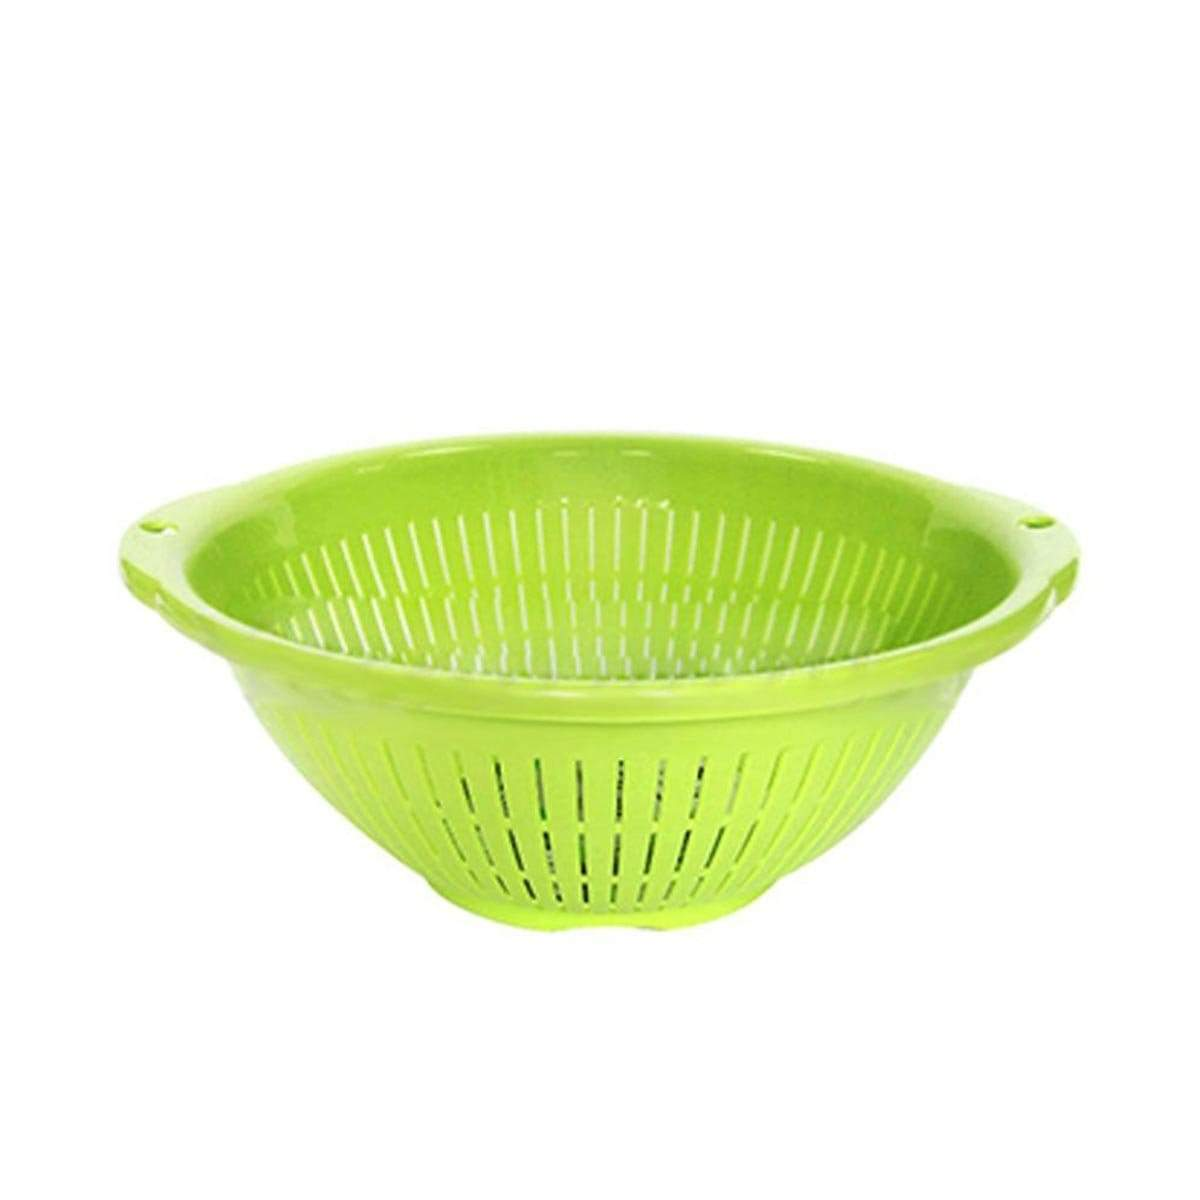 Japanese Plastic Fresh Strainer Drain Basket R-24 Green